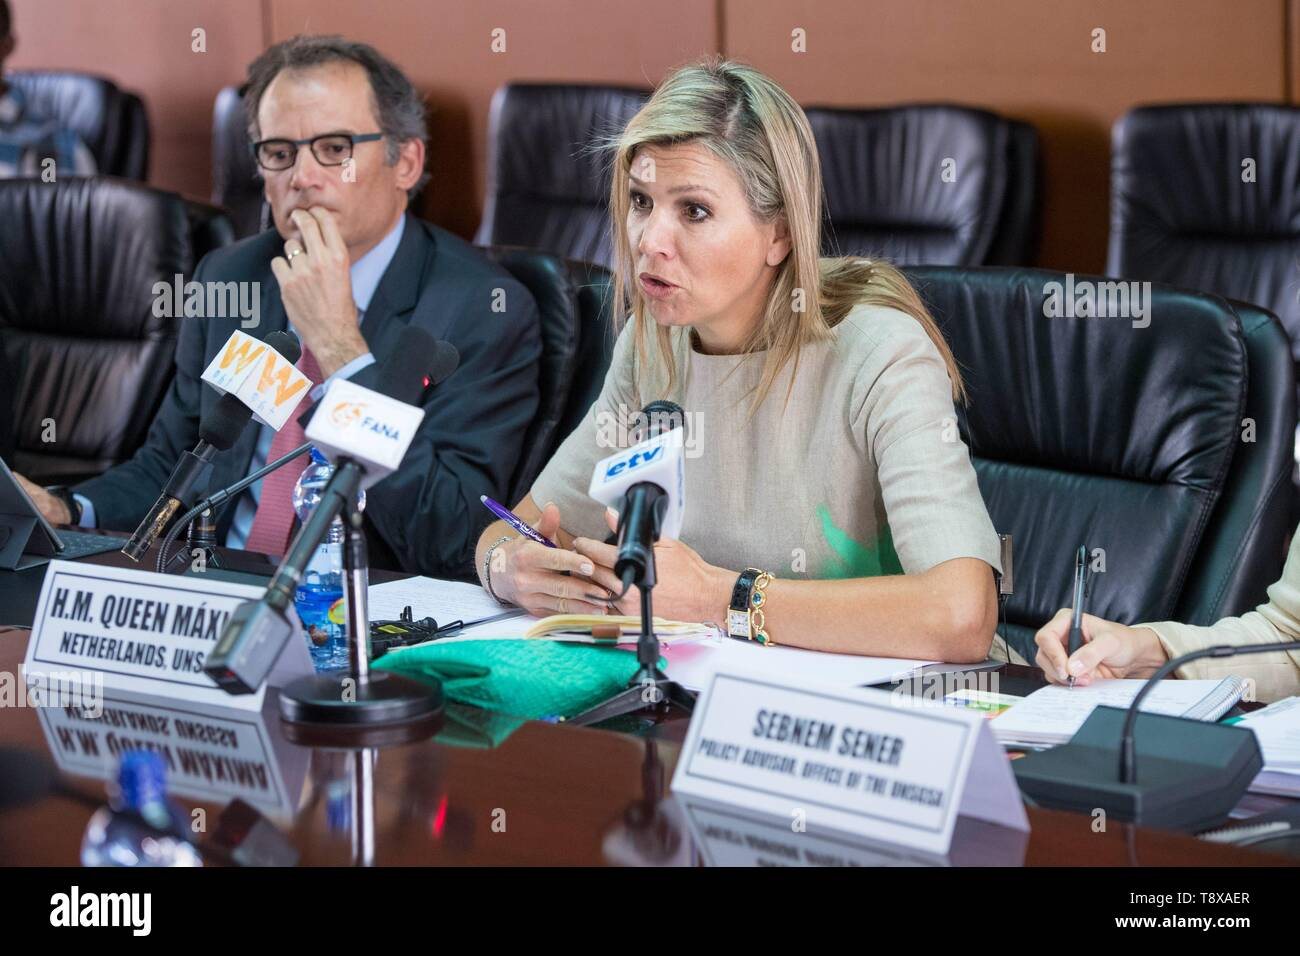 Addis Ababa, Ethiopia  15th May, 2019  Queen Maxima of The